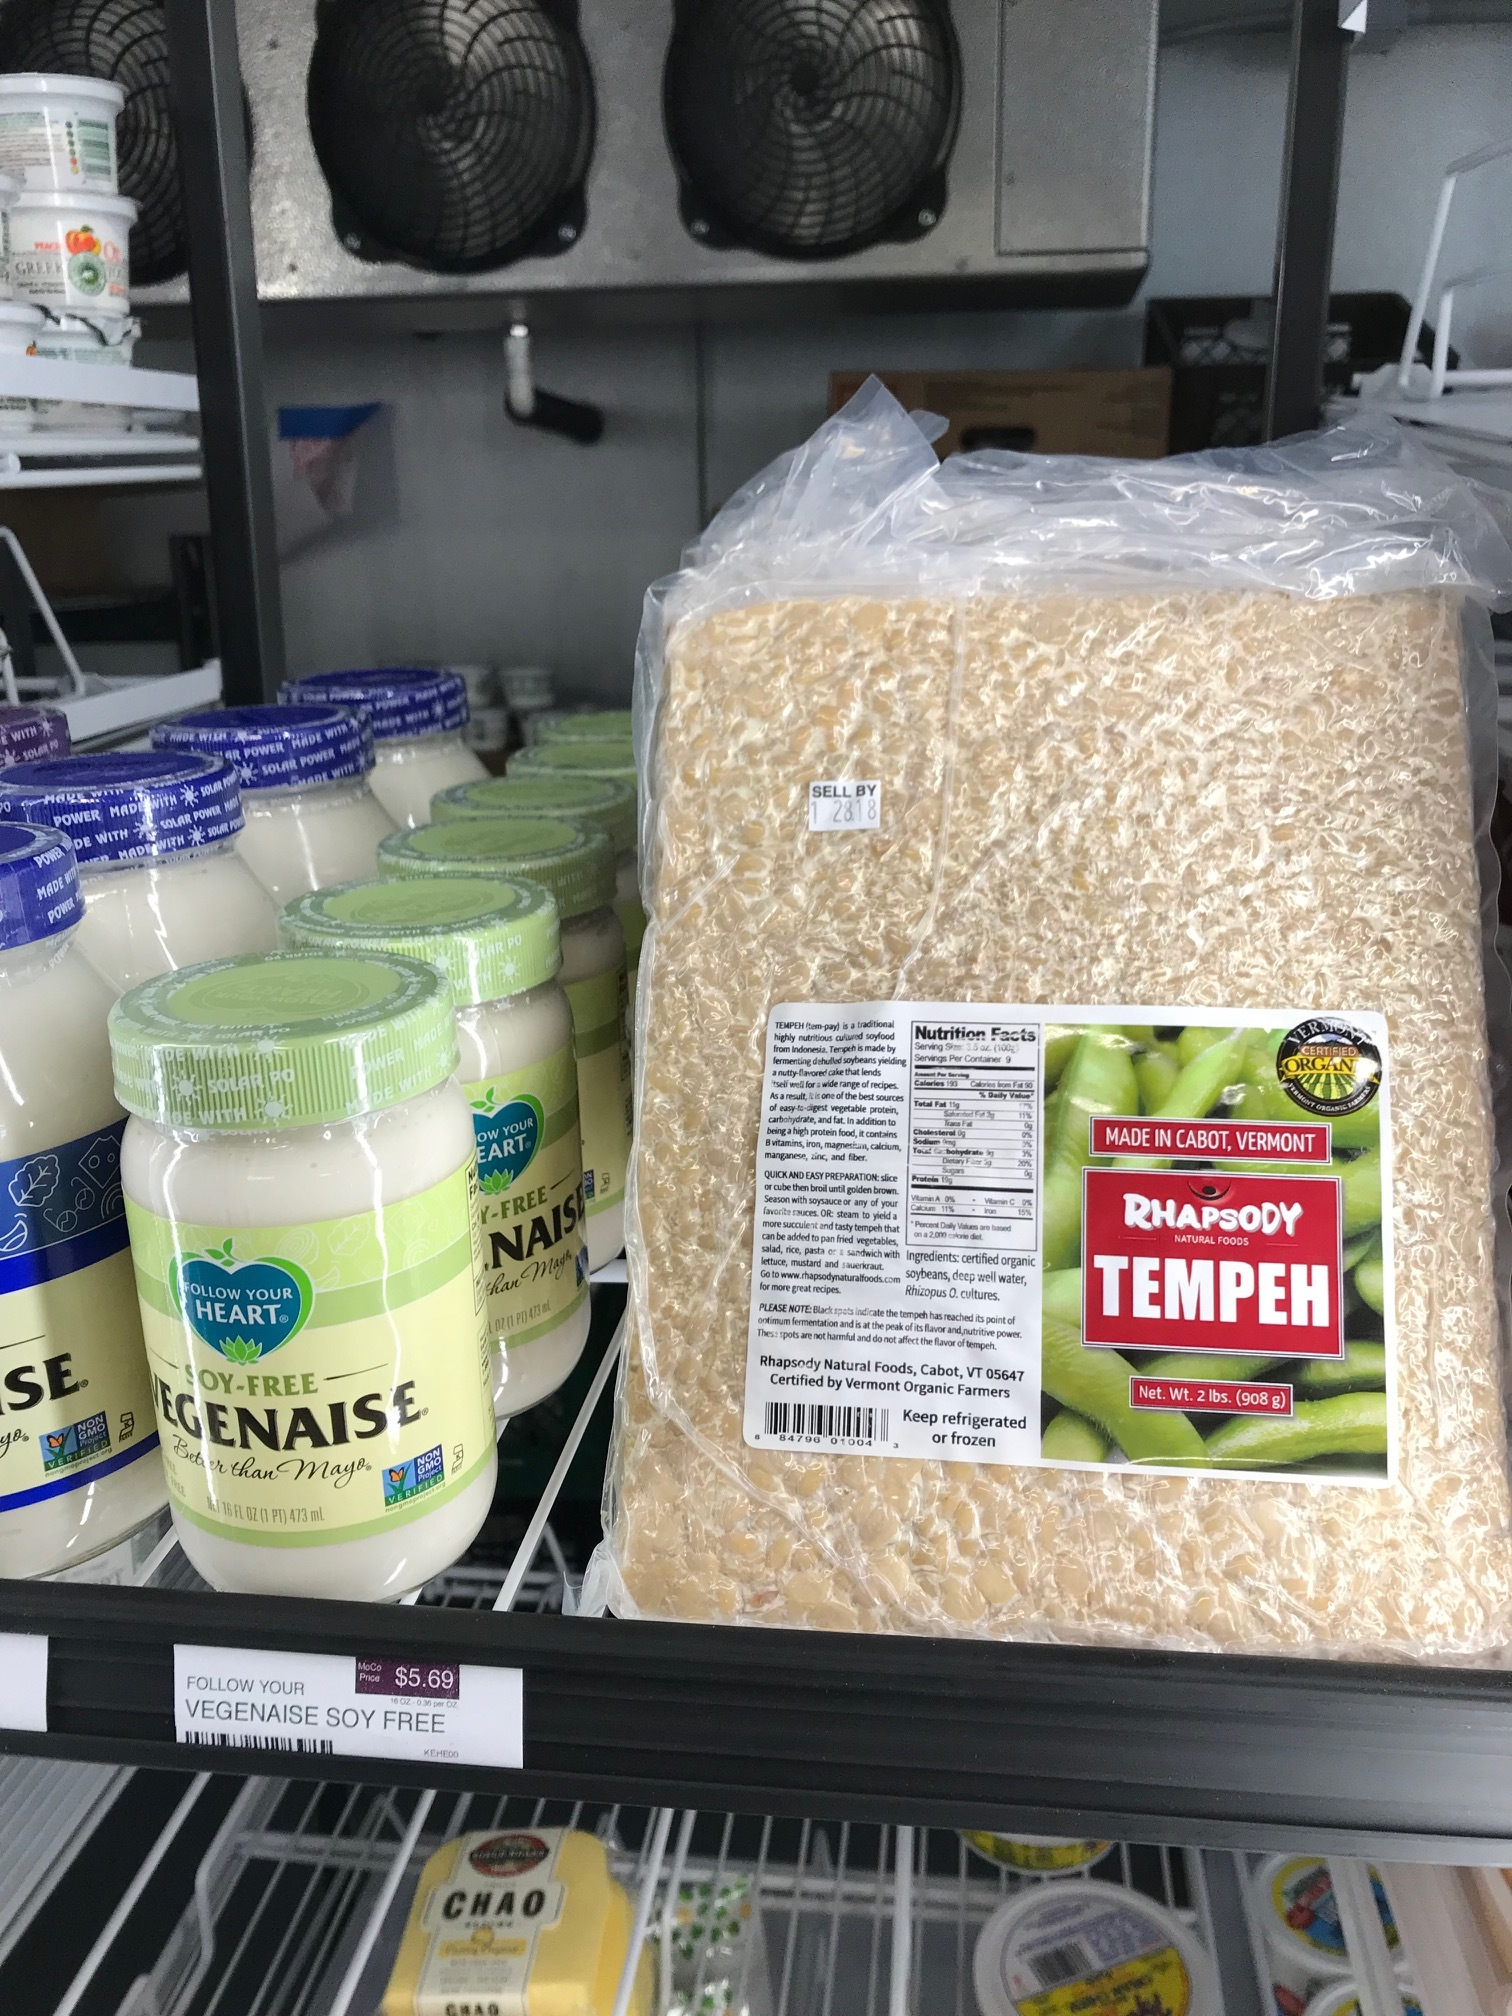 Find the tempeh mentioned in this post in the regrigerated section!